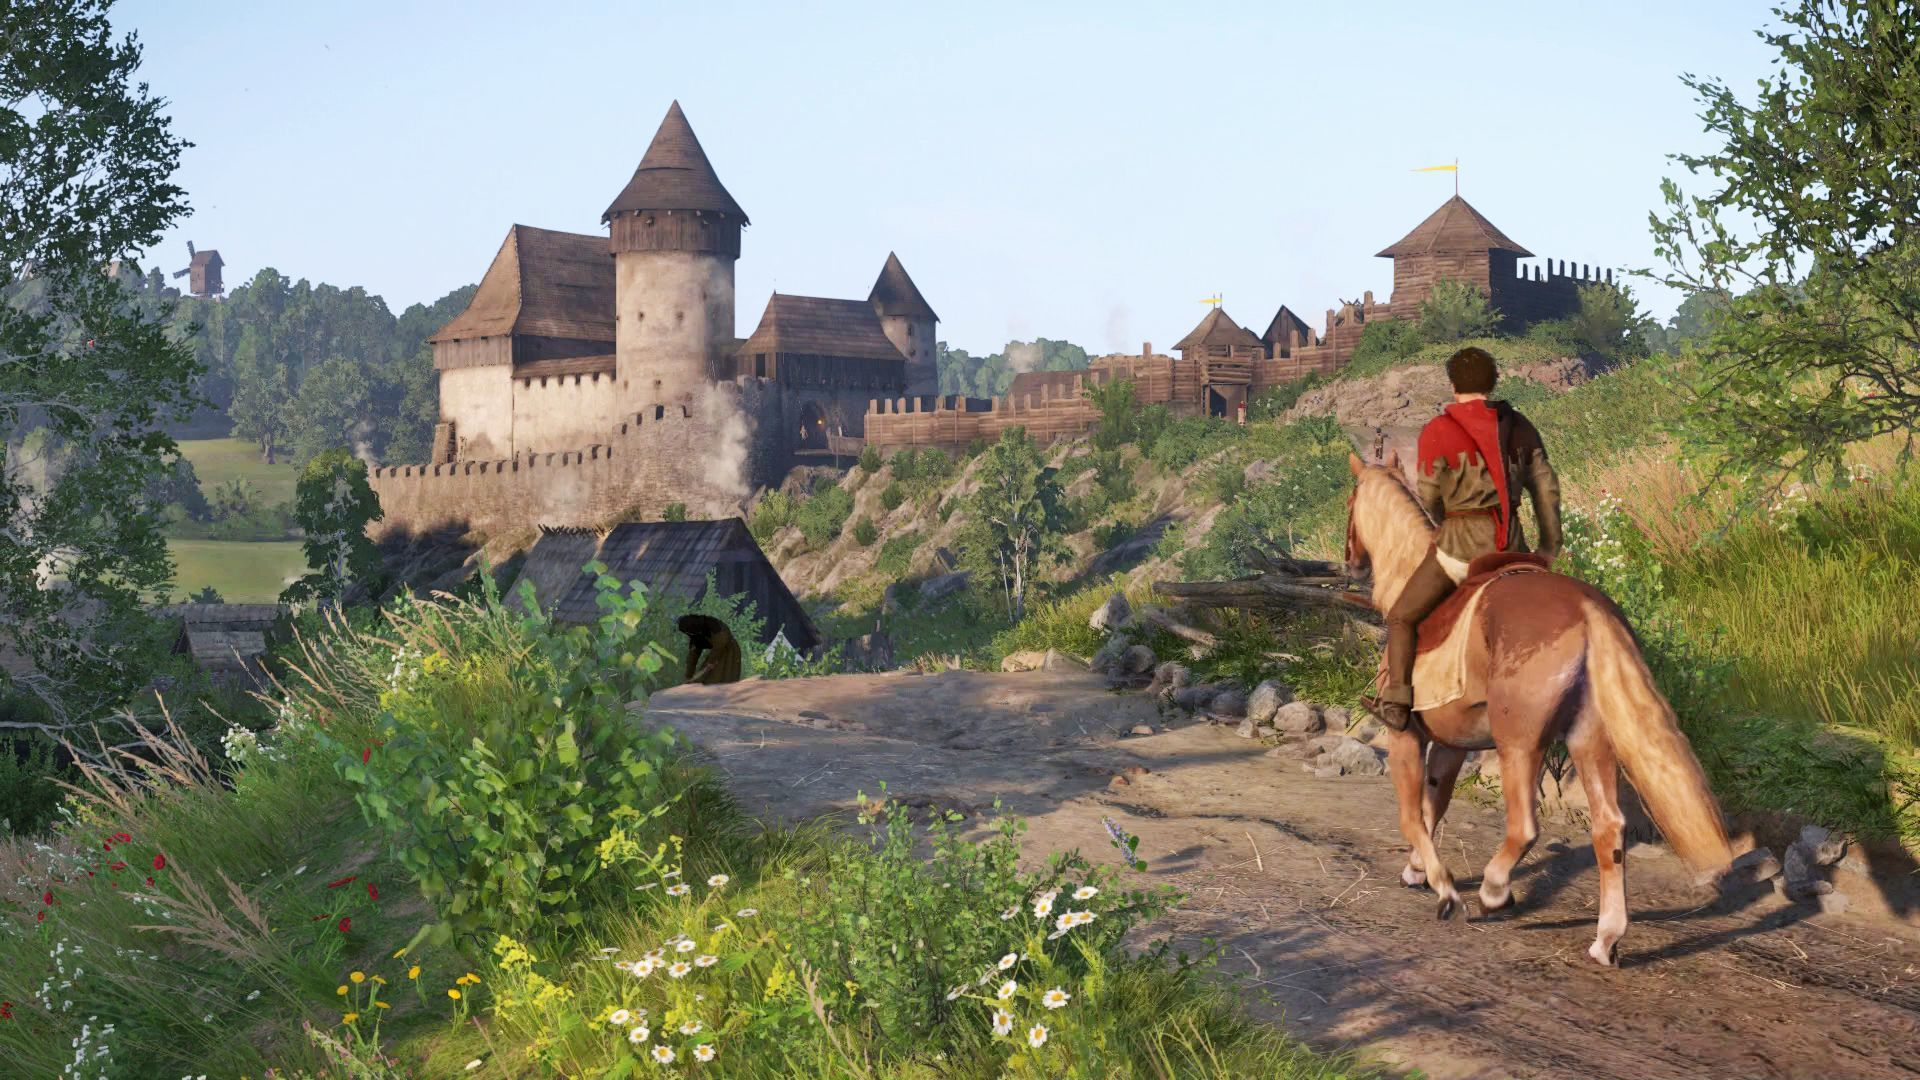 Мод реалистичности для Kingdom Come Deliverance